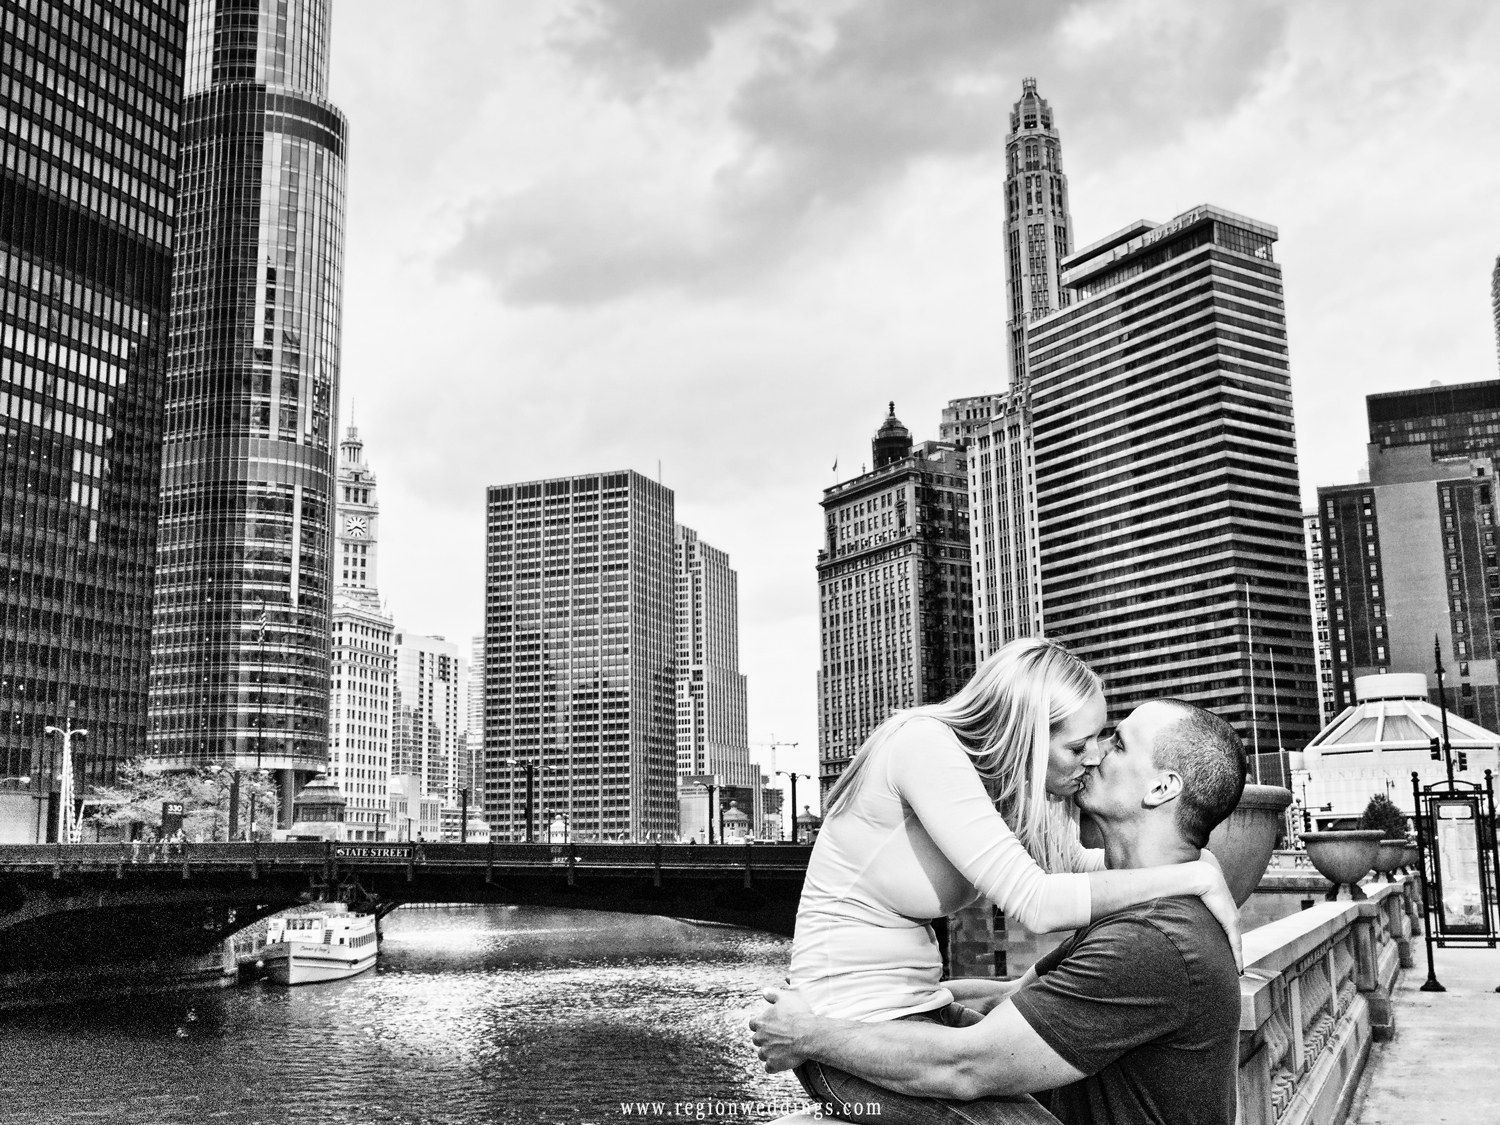 A couple kisses on the rail at the Chicago River with skyscrapers behind them.